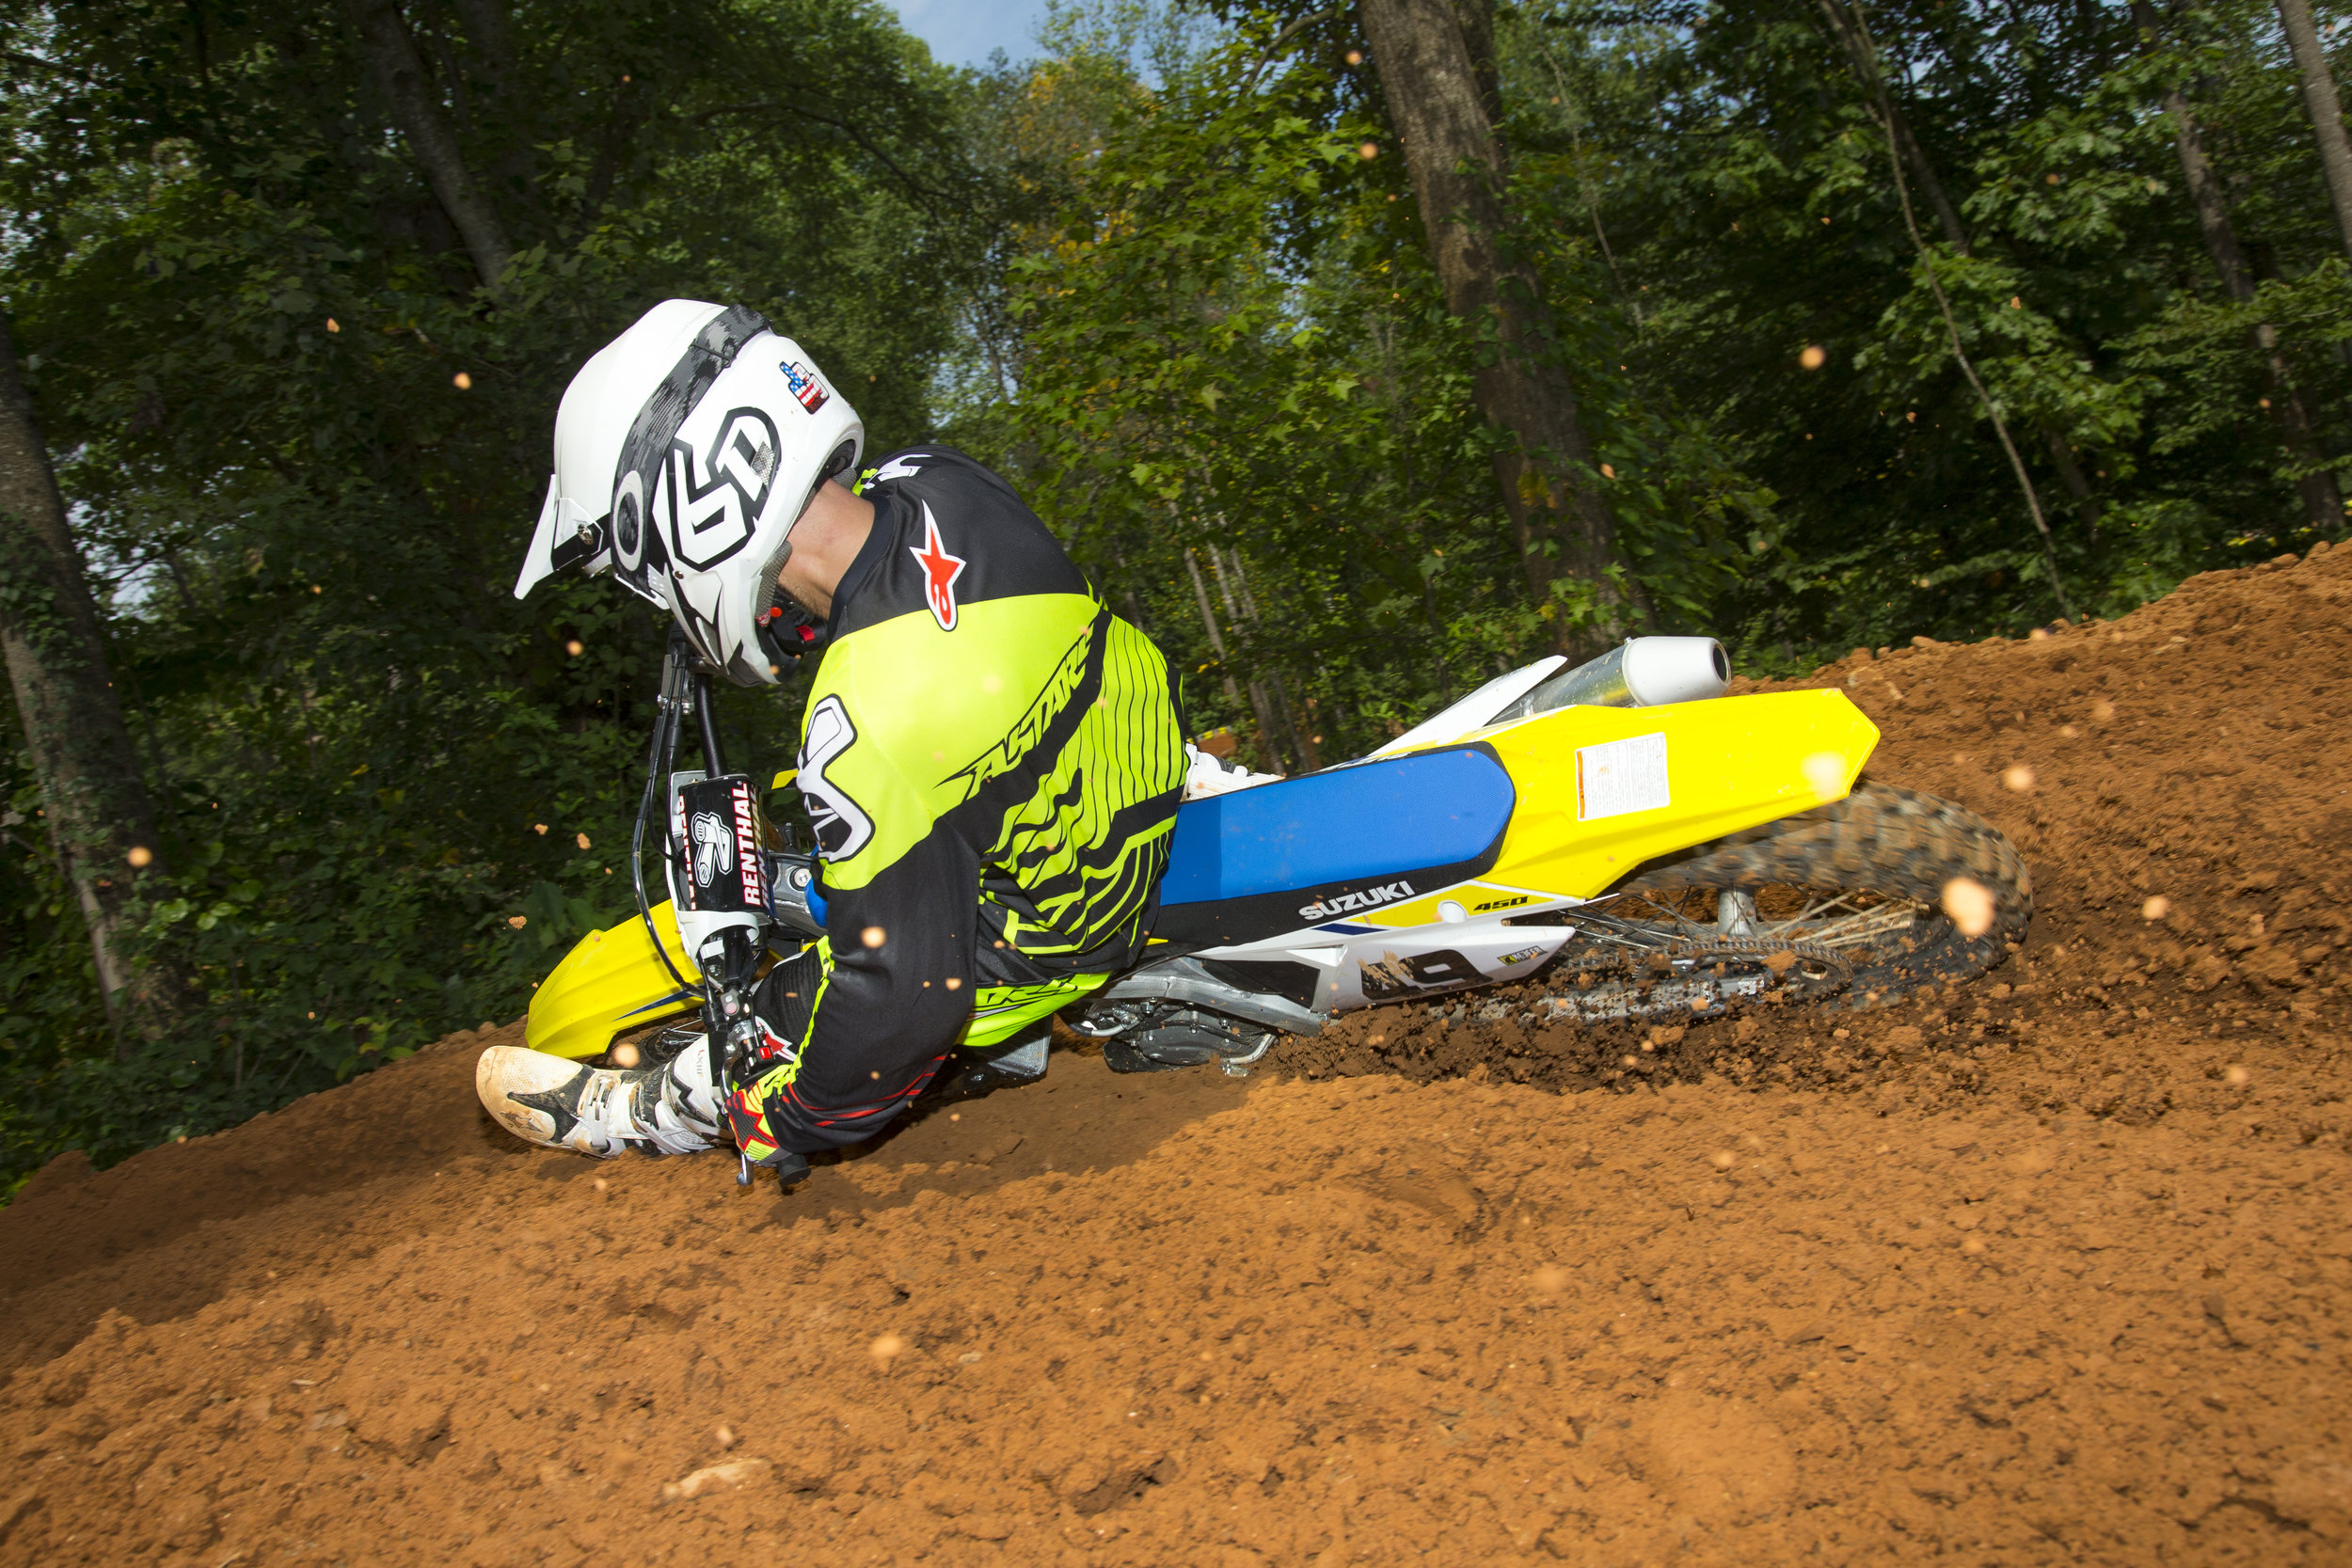 Yes, the Suzuki can still carve a corner like no one else.